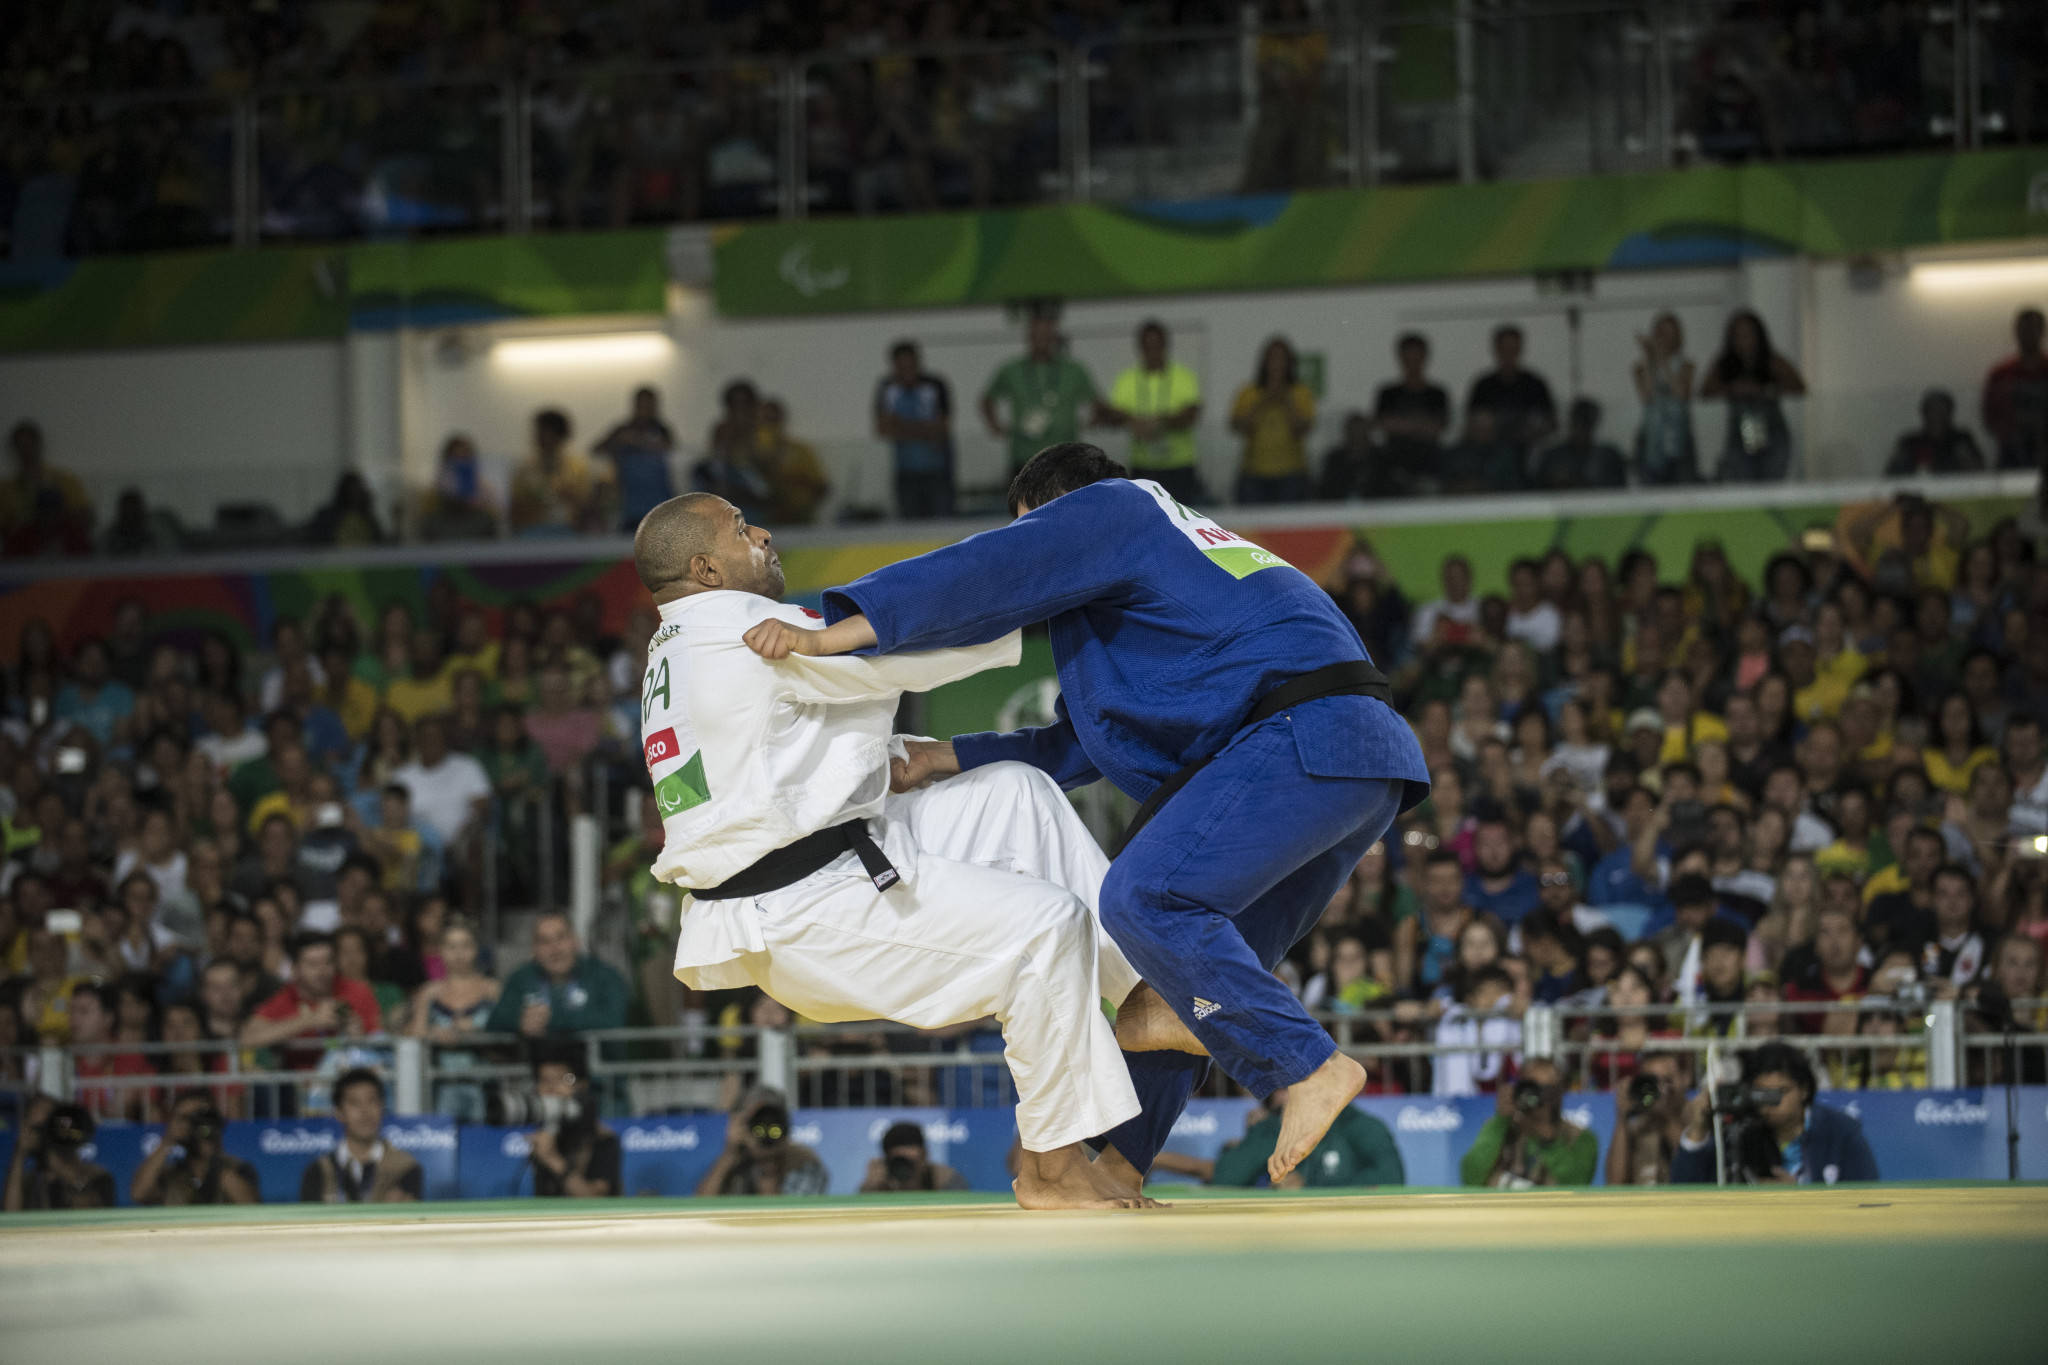 Brazil's Antonio Tonorio and Choi Gwang-geun of South Korea in action during the men's under-100kg contest at the Rio 2016 Paralympic Games ©Getty Images